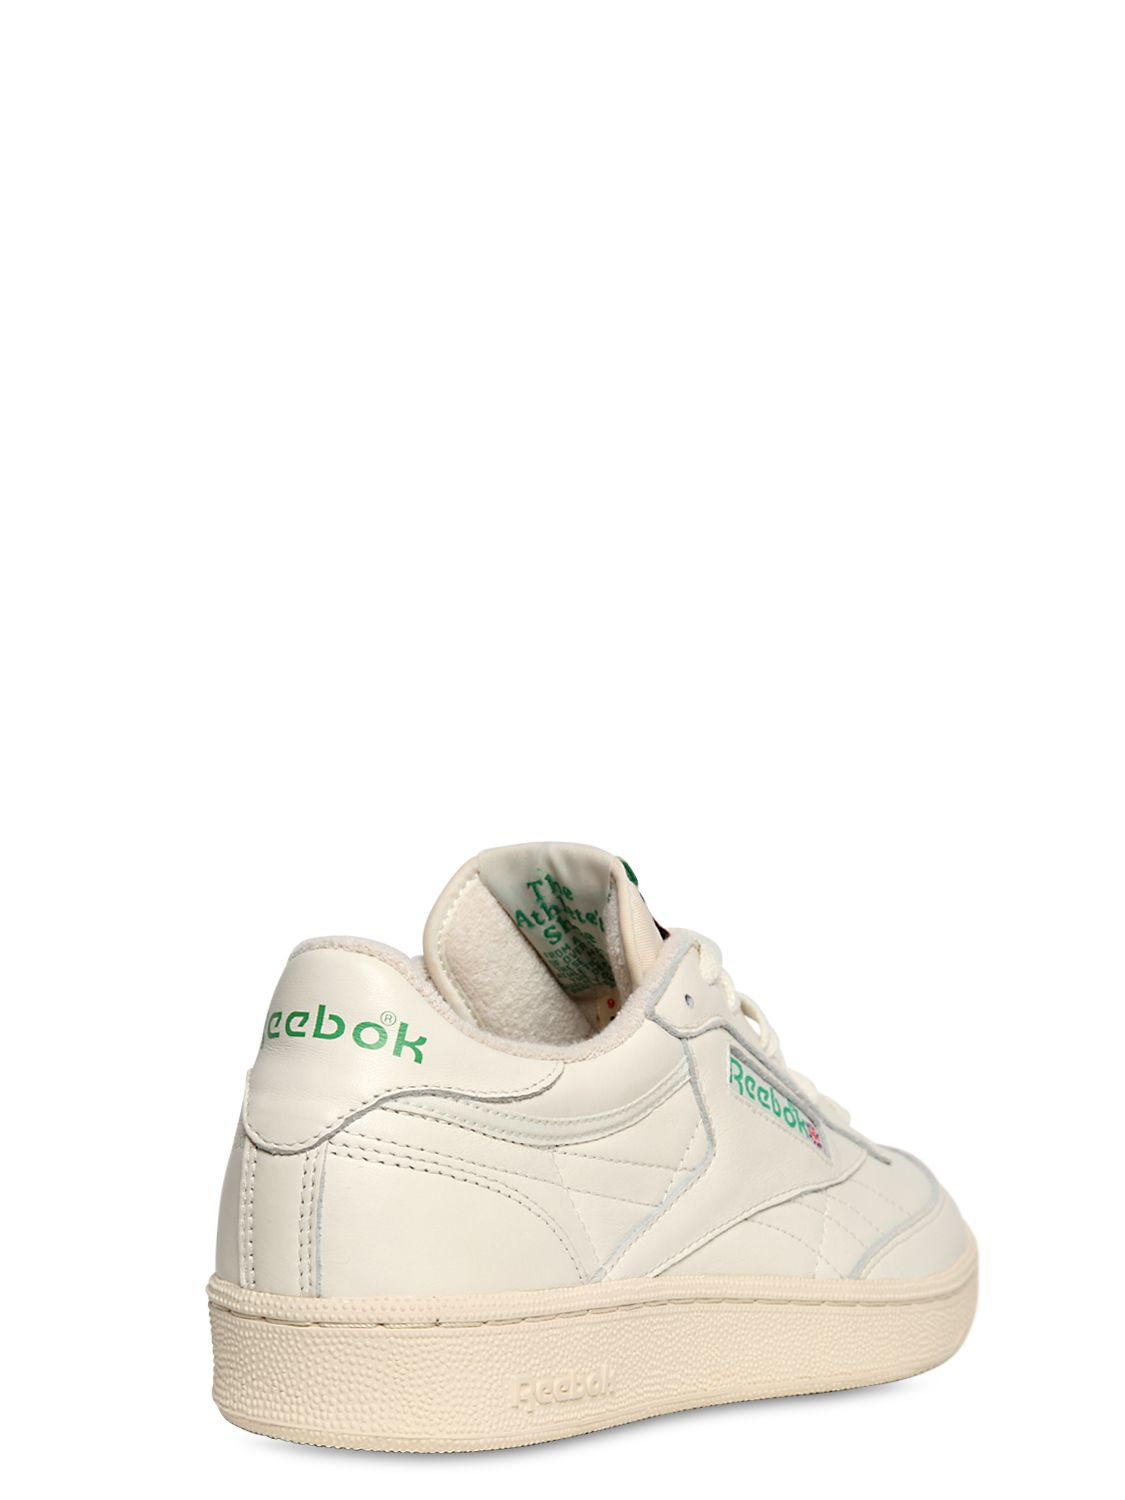 b9e8451f272 Reebok Club C 85 Vintage Leather Low-Top Sneakers in White for Men - Lyst